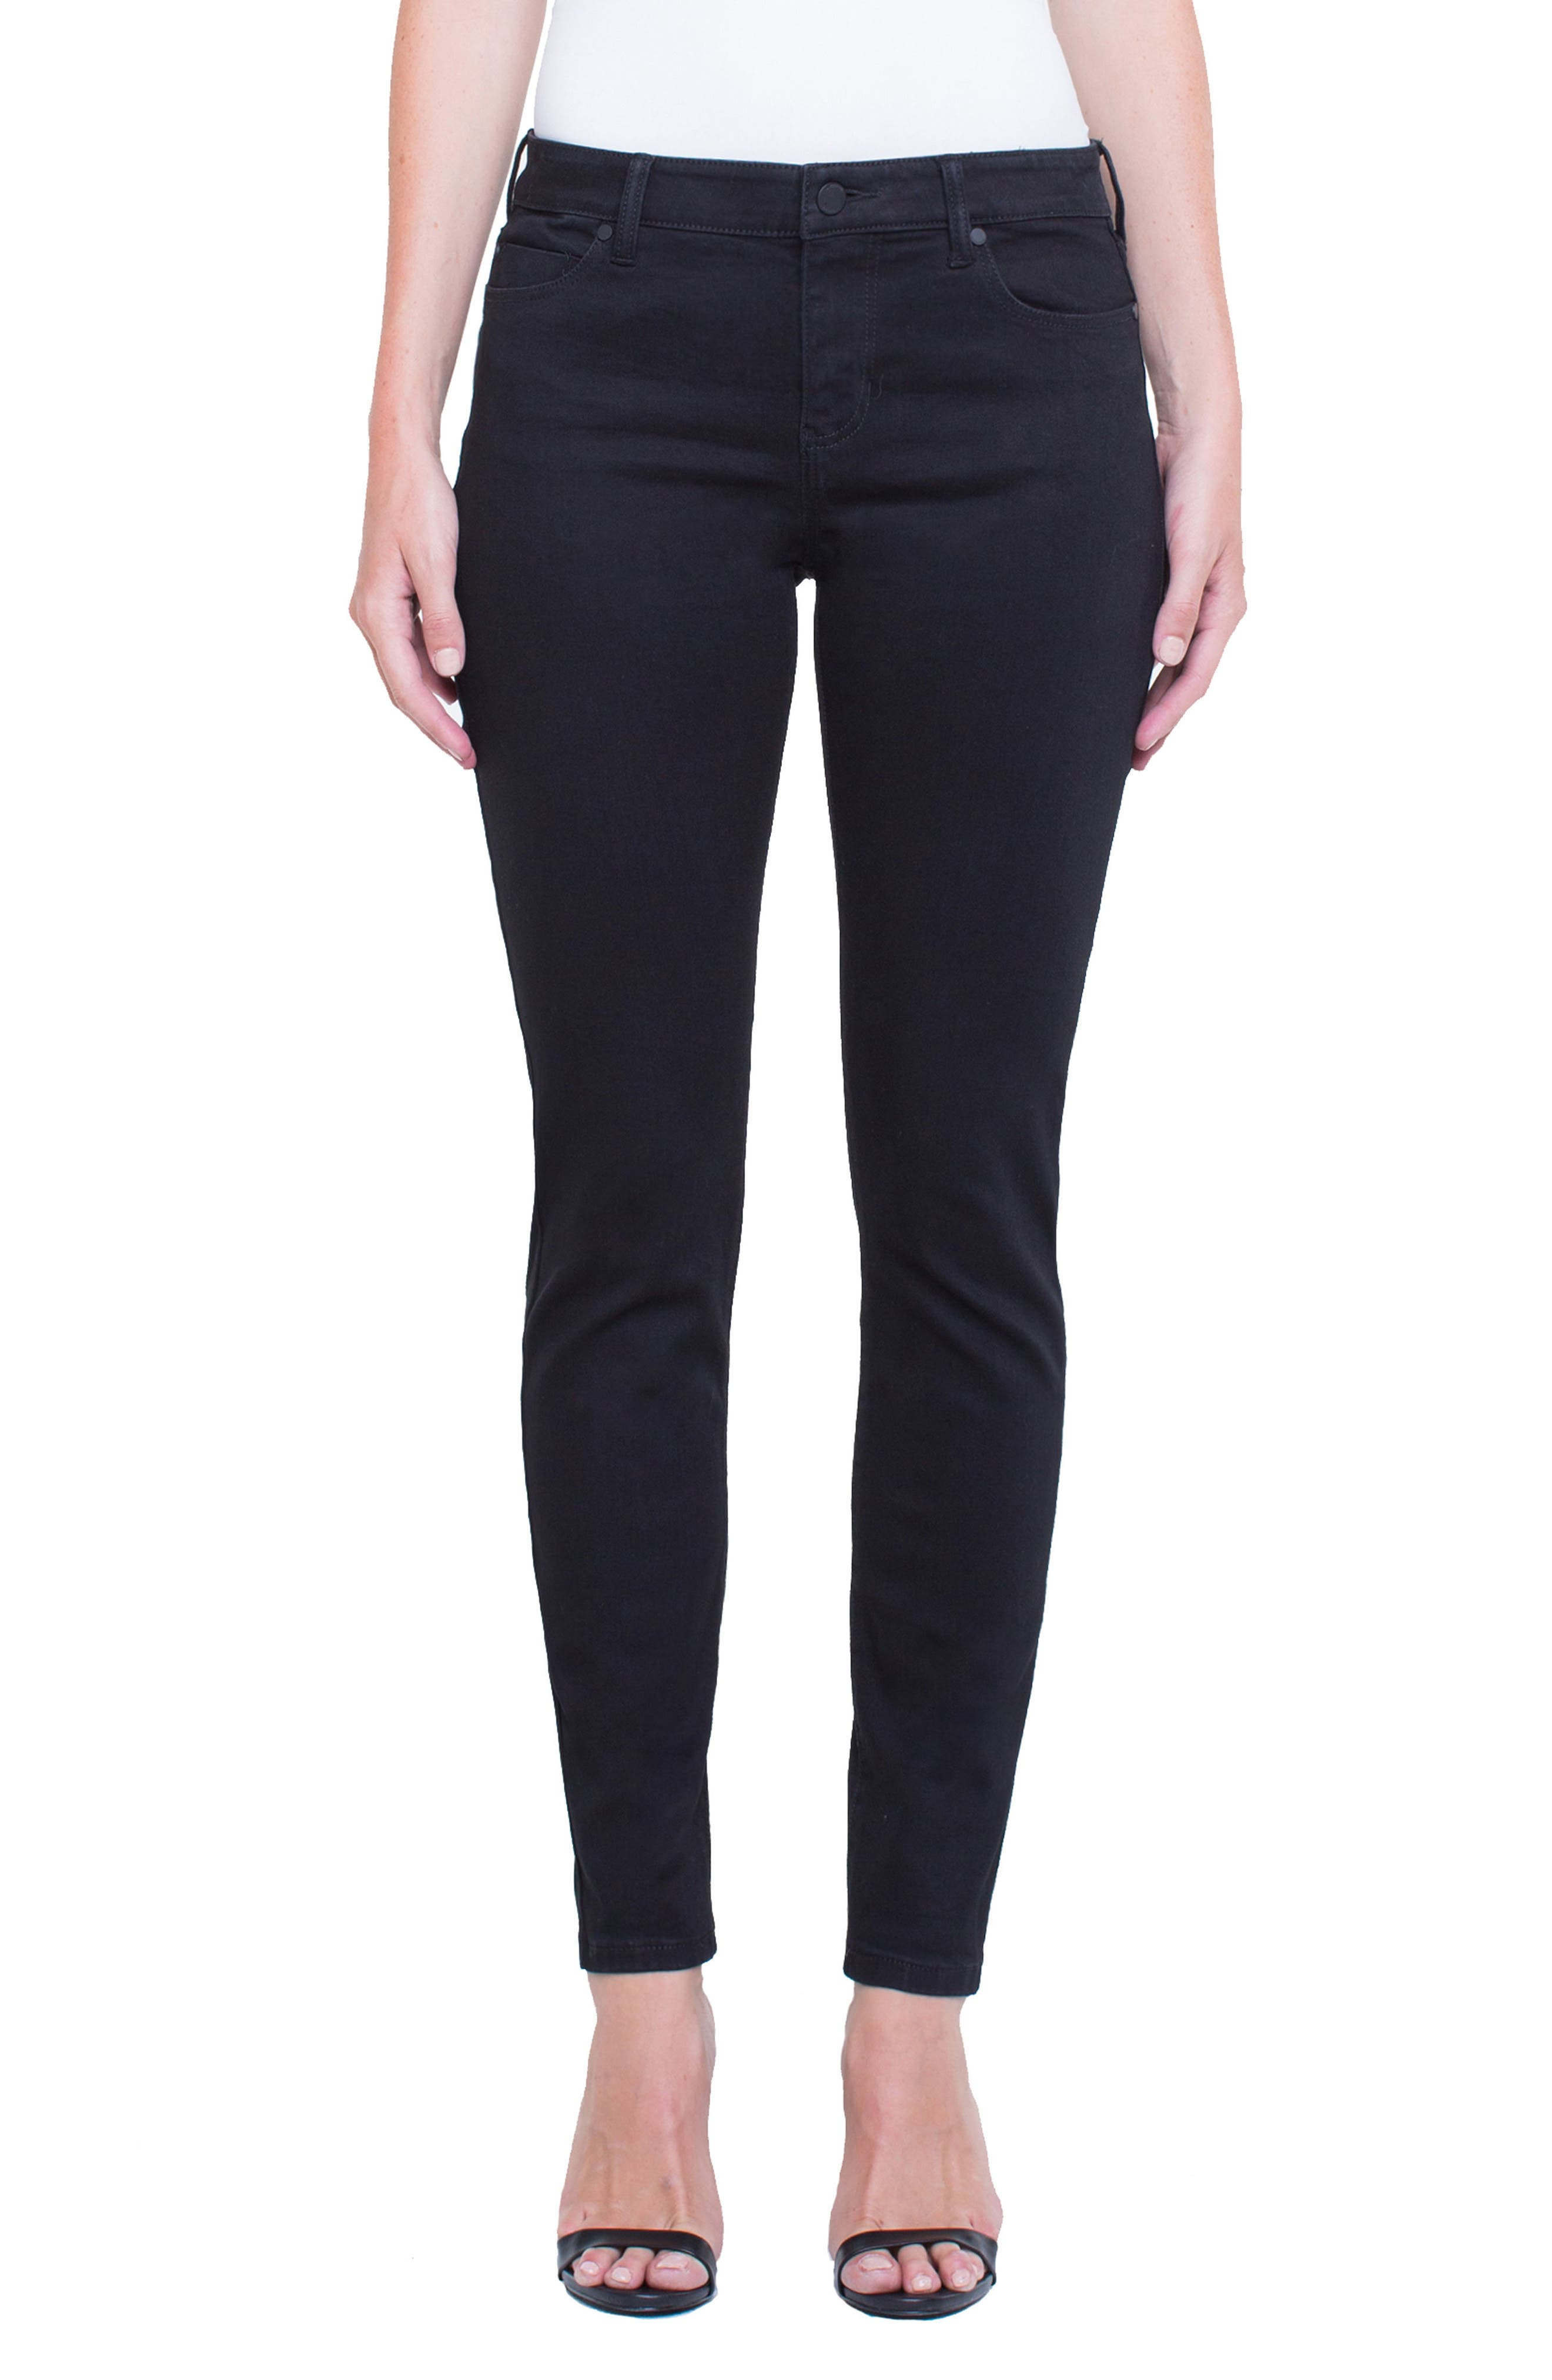 Women's Liverpool Jeans Company Abby Mid Rise Soft Stretch Skinny Jeans